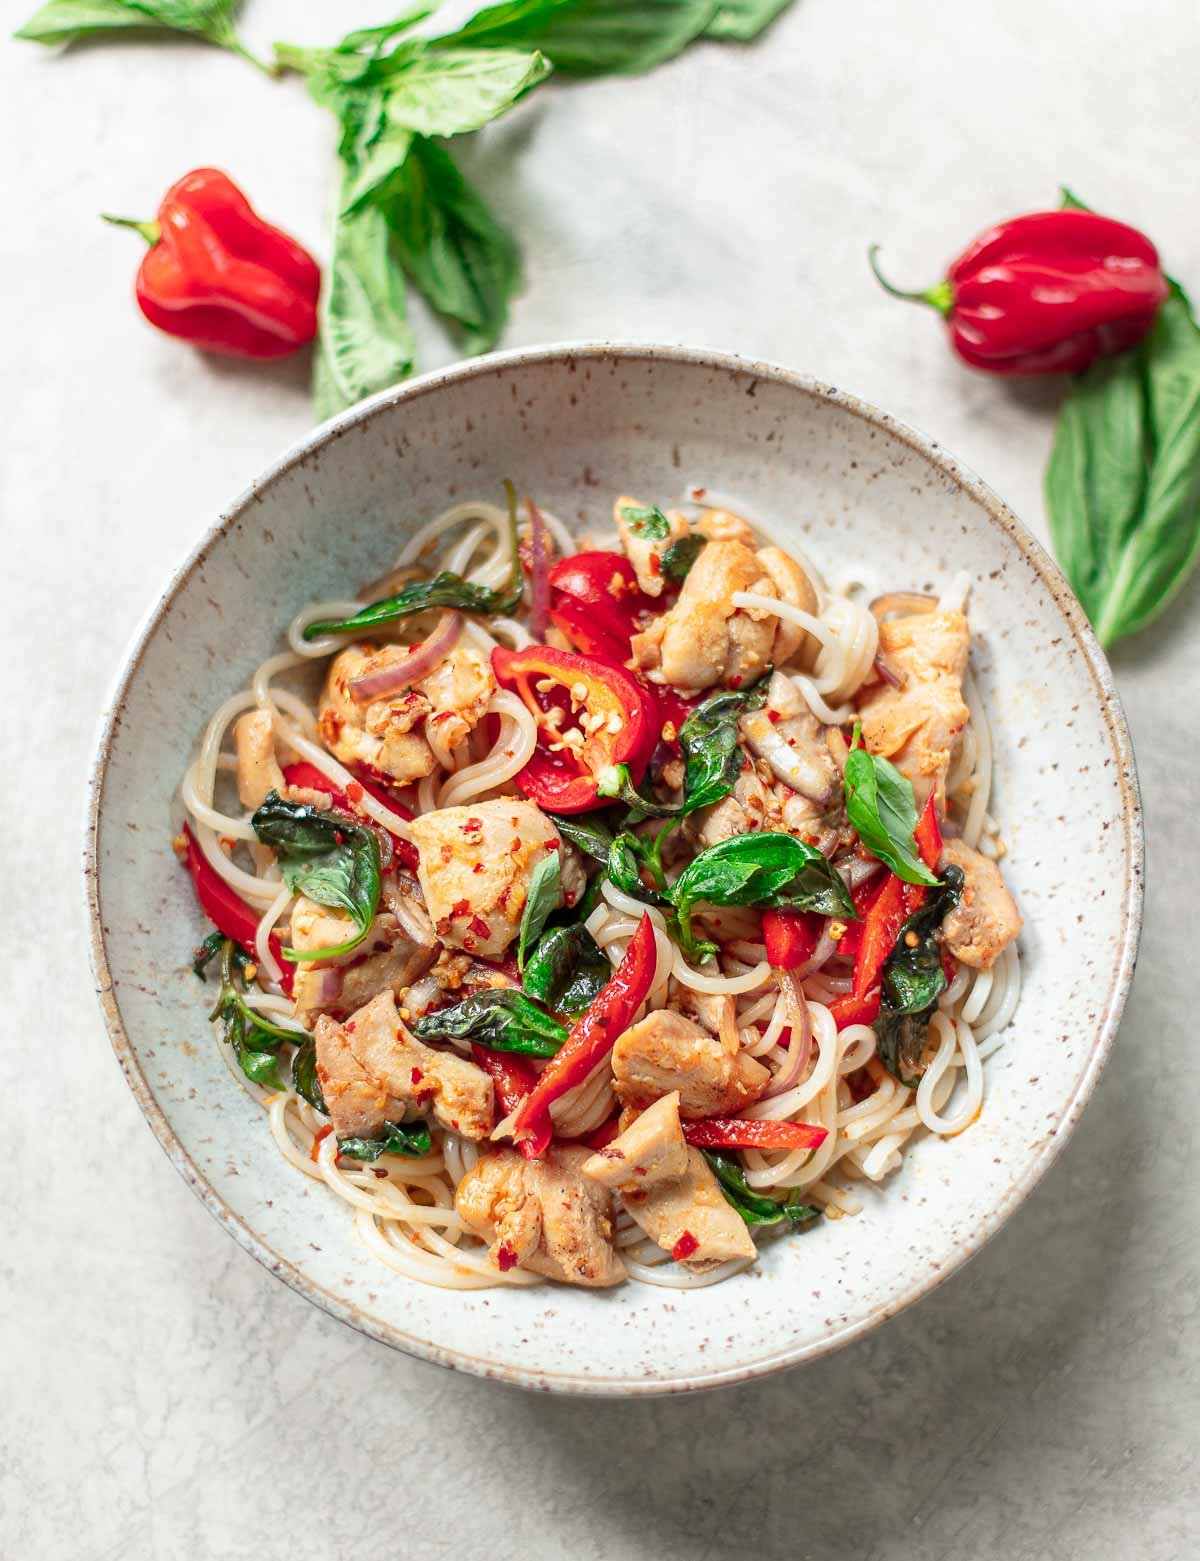 chunks of chicken in Thai basil sauce with red bell pepper, chili peppers, fresh basil and rice noodles in a gray serving bowl.